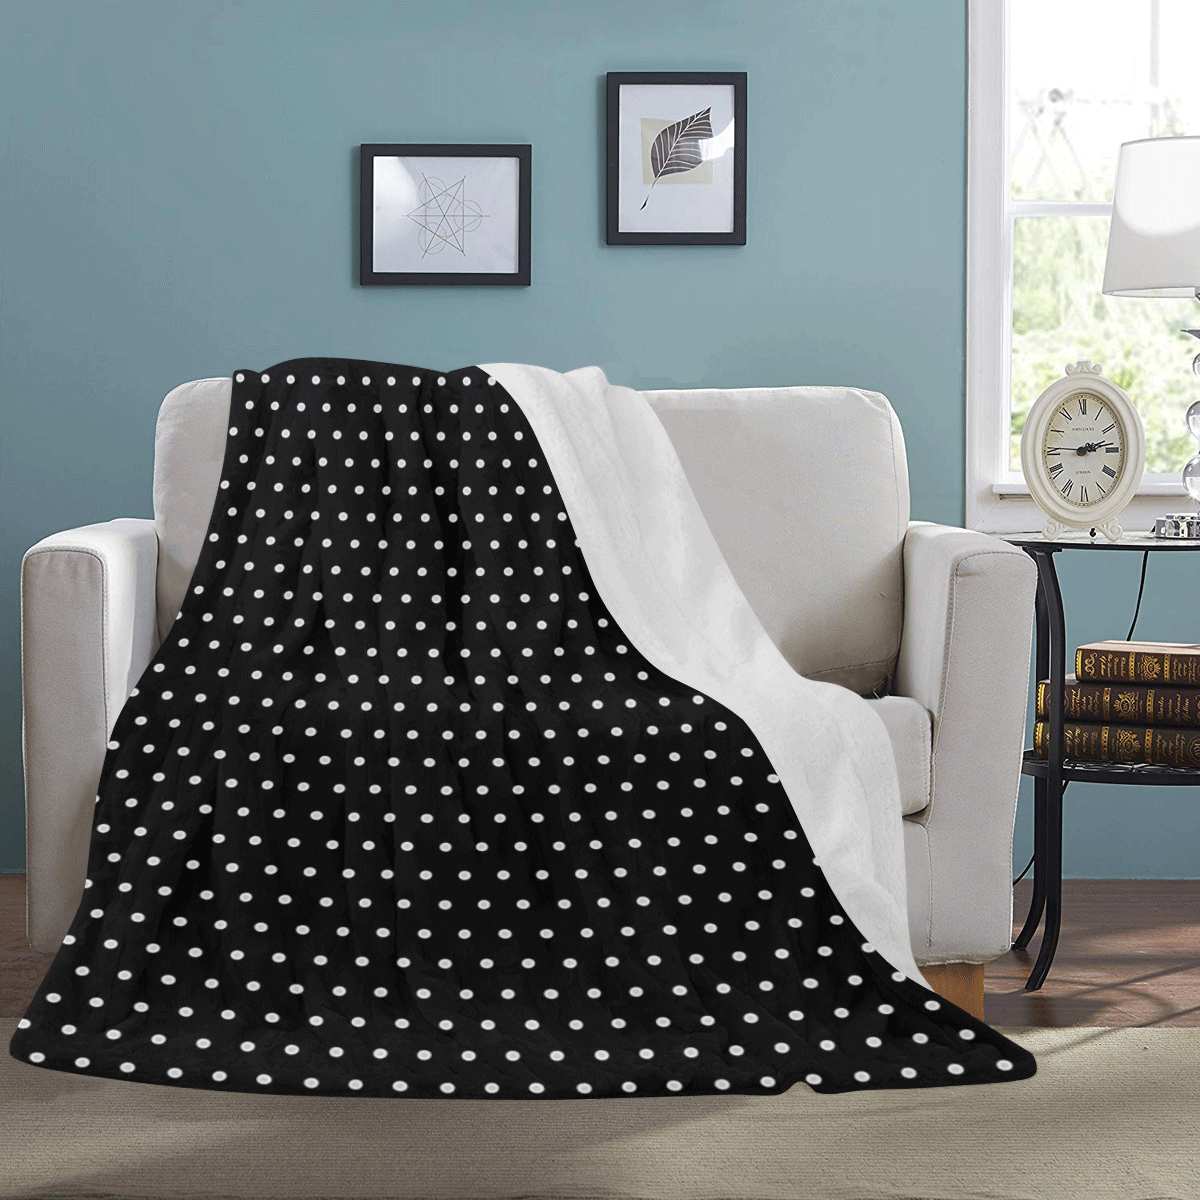 "Polka Dot Pin Black - Jera Nour Ultra-Soft Micro Fleece Blanket 60""x80"""